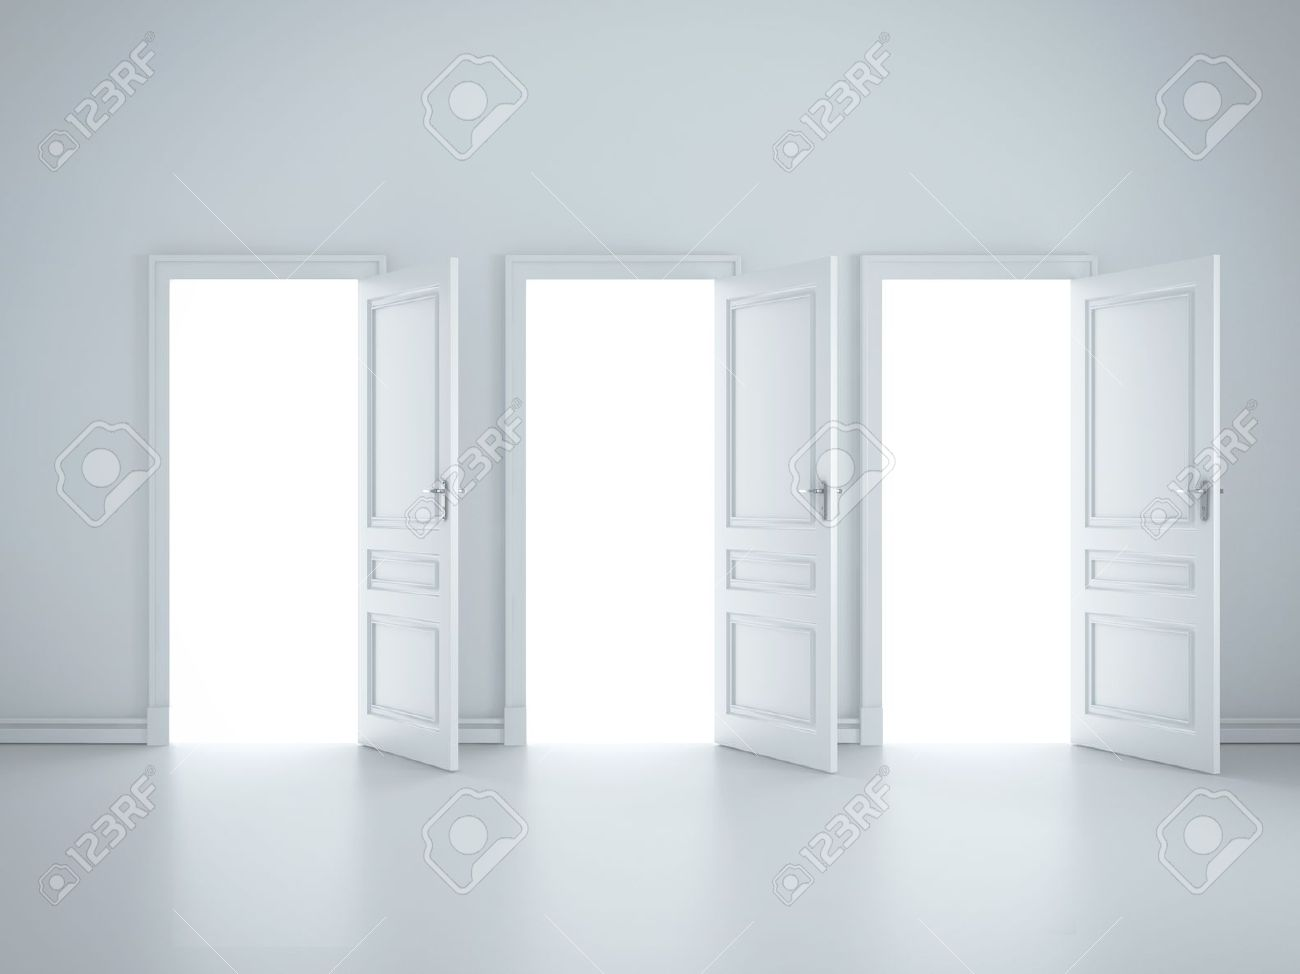 Stock Photo - three open doors in white room : doors open - pezcame.com